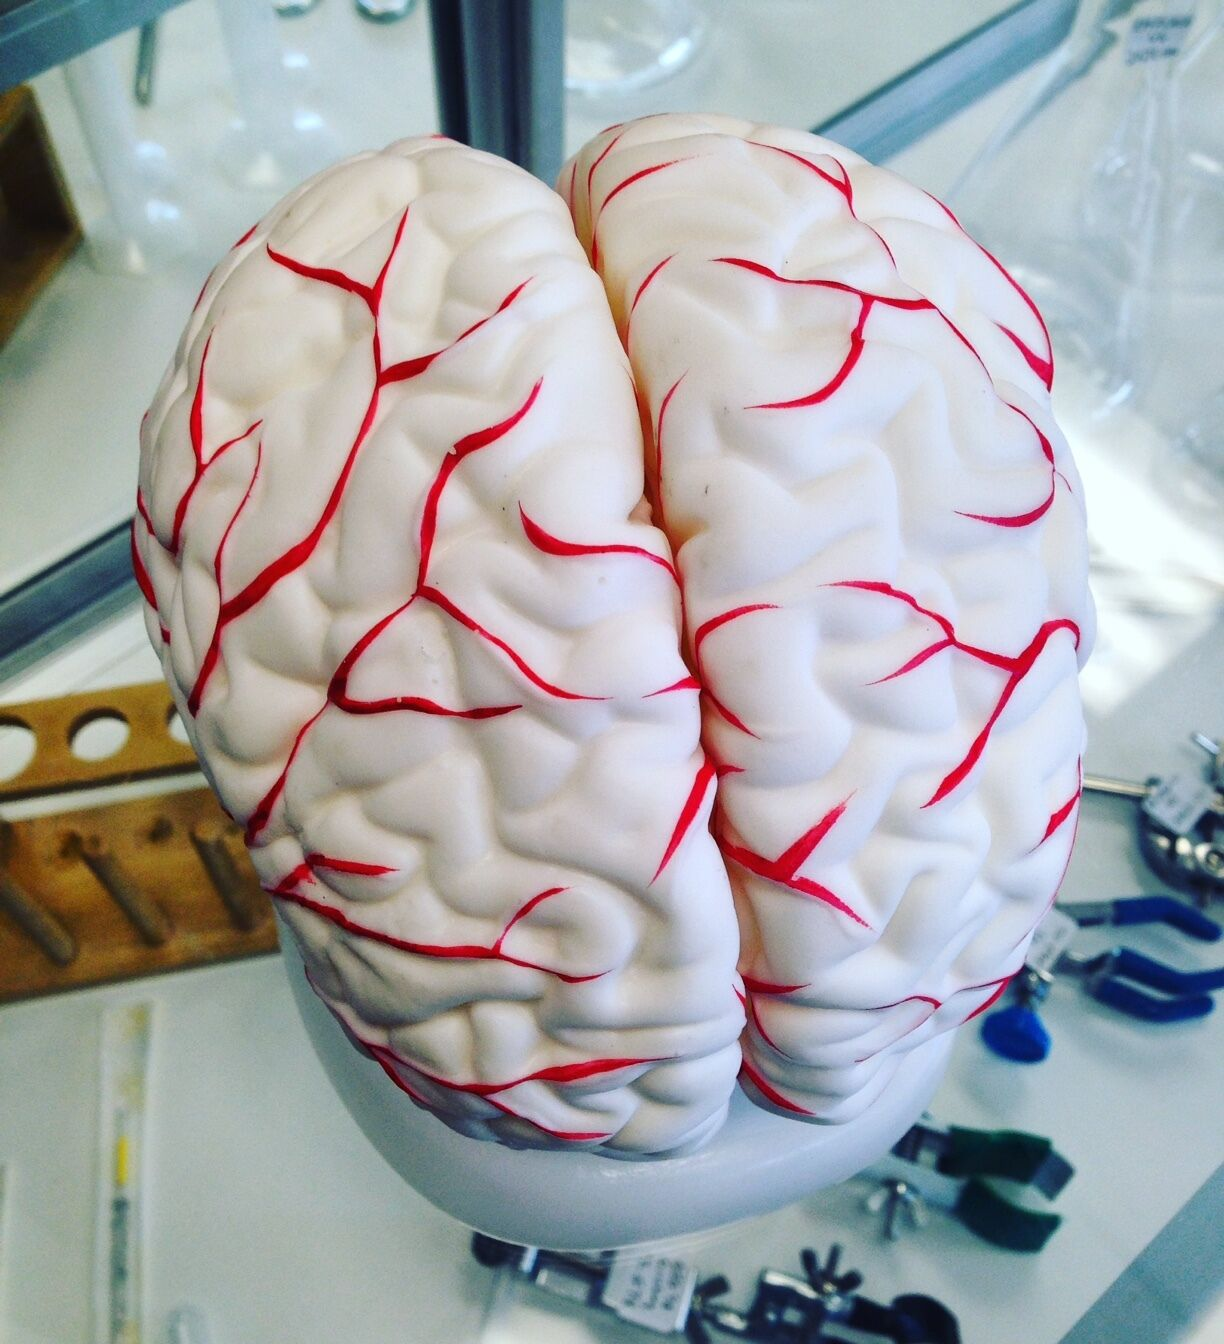 HUMAN BRAIN MODEL with ARTERIES ANATOMICAL ANATOMY MODEL (8-Parts ...